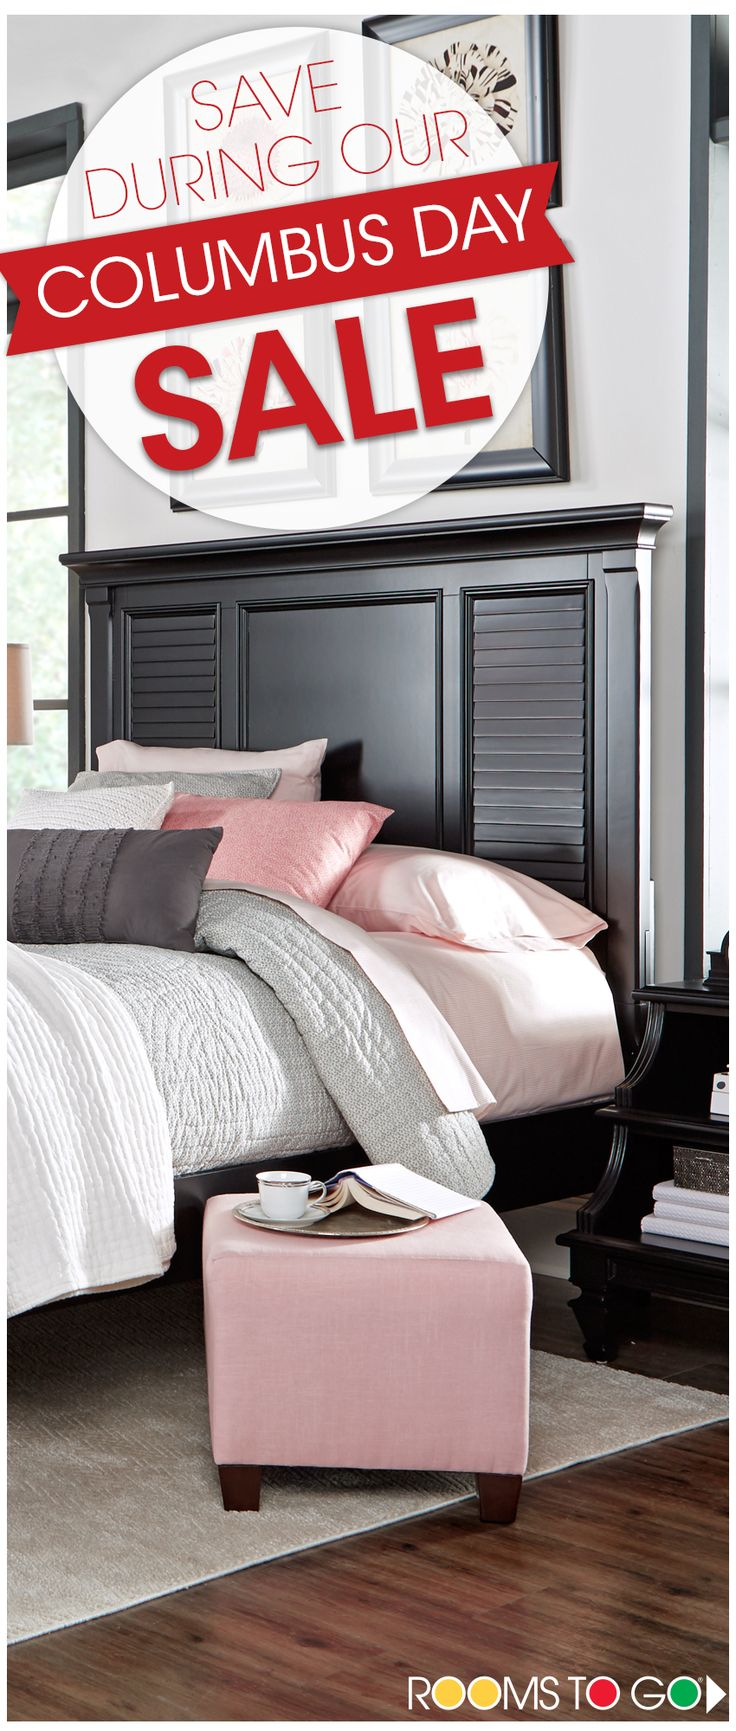 10+ images about dreamy bedrooms on pinterest | sofia vergara